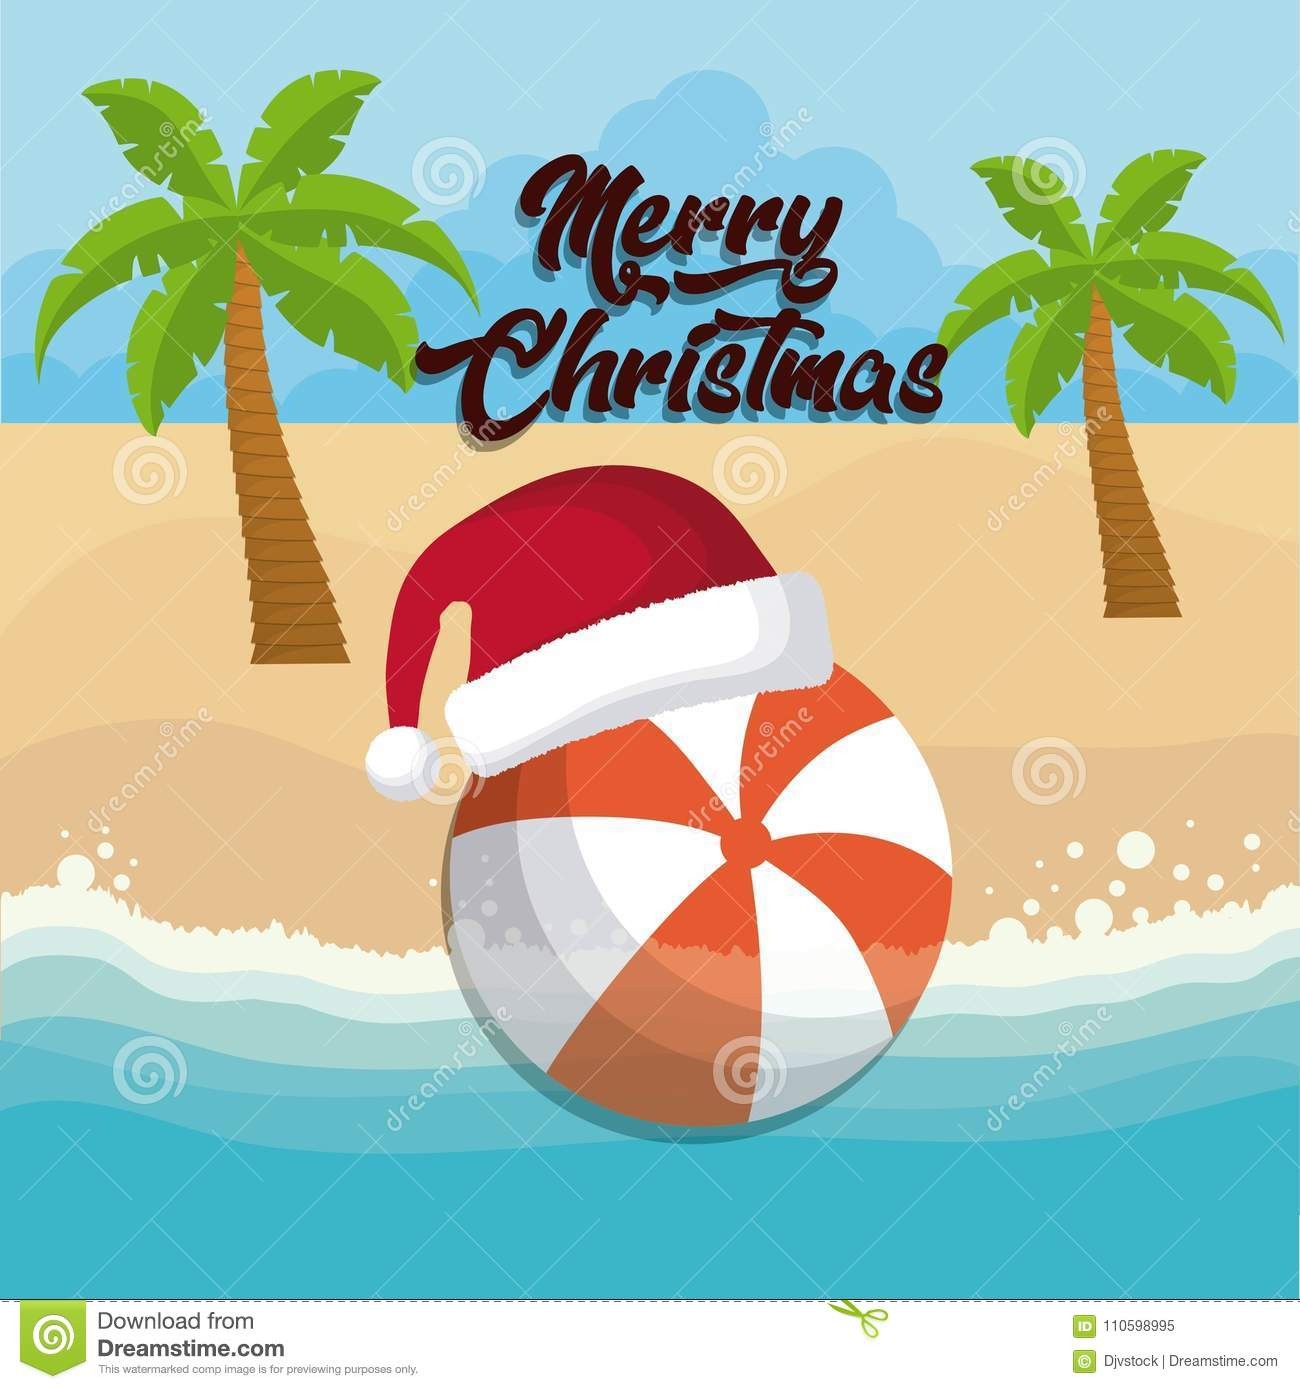 Christmas Vacations.Christmas Vacations Design Stock Vector Illustration Of